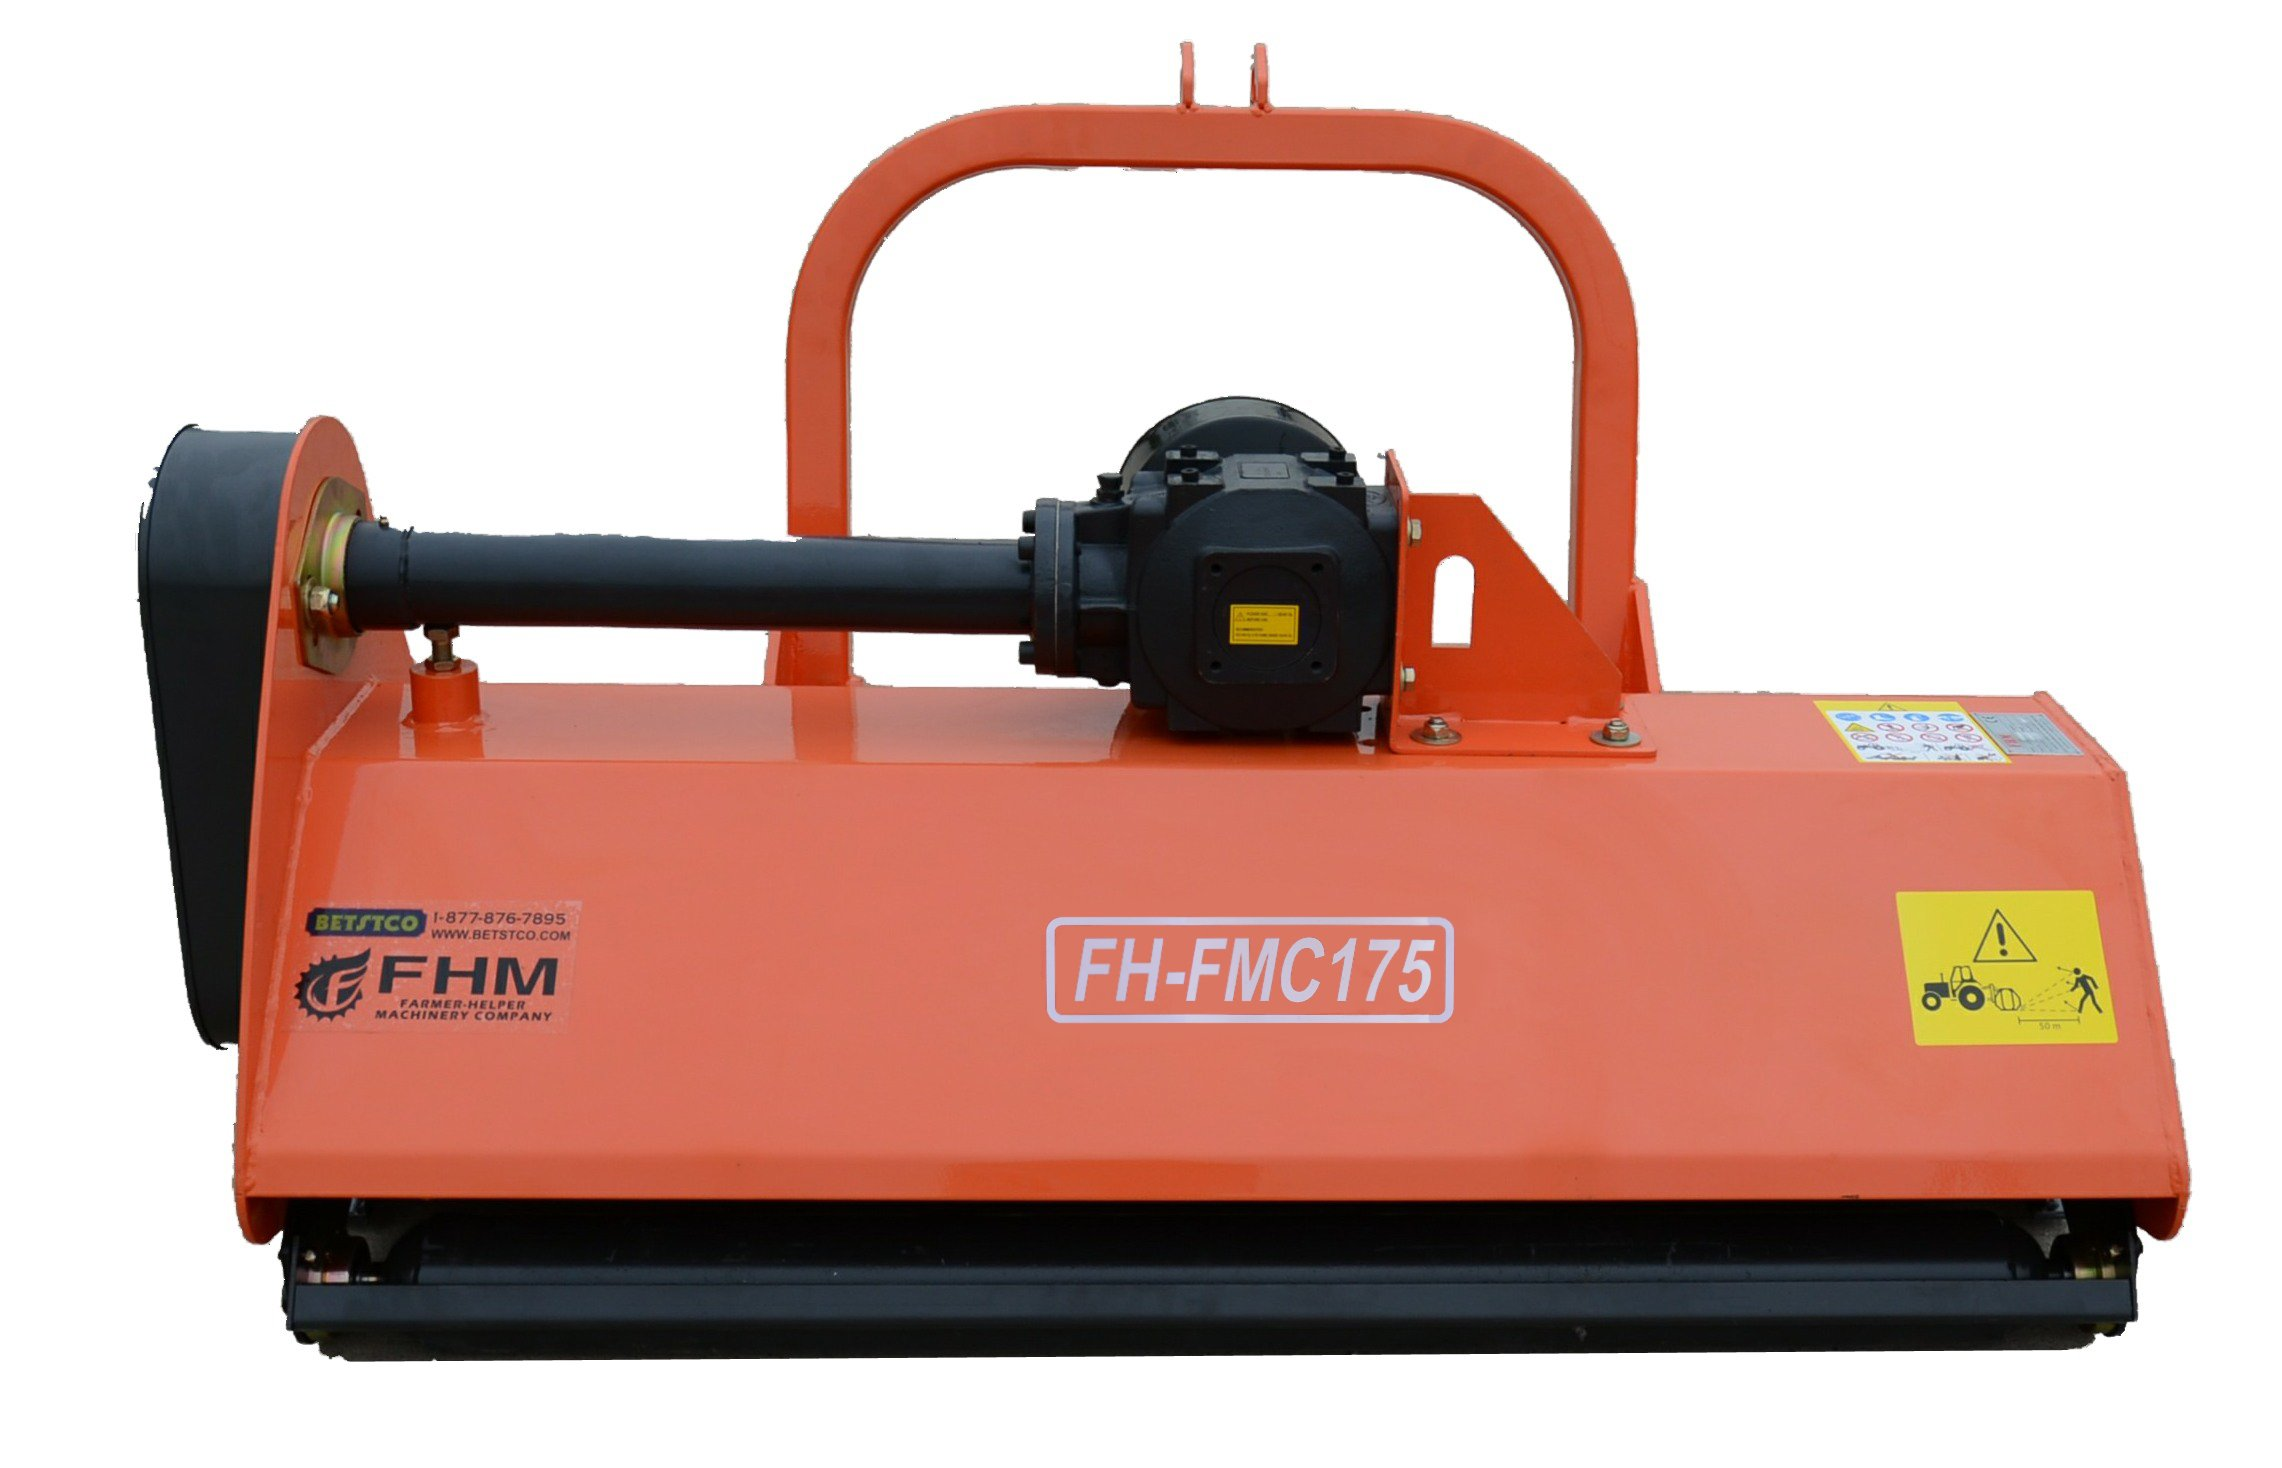 68'' Centered Heavy Duty Flail Row Mower with Hammer Blades 3 Point Requires a Tractor. Not a standalone Unit.